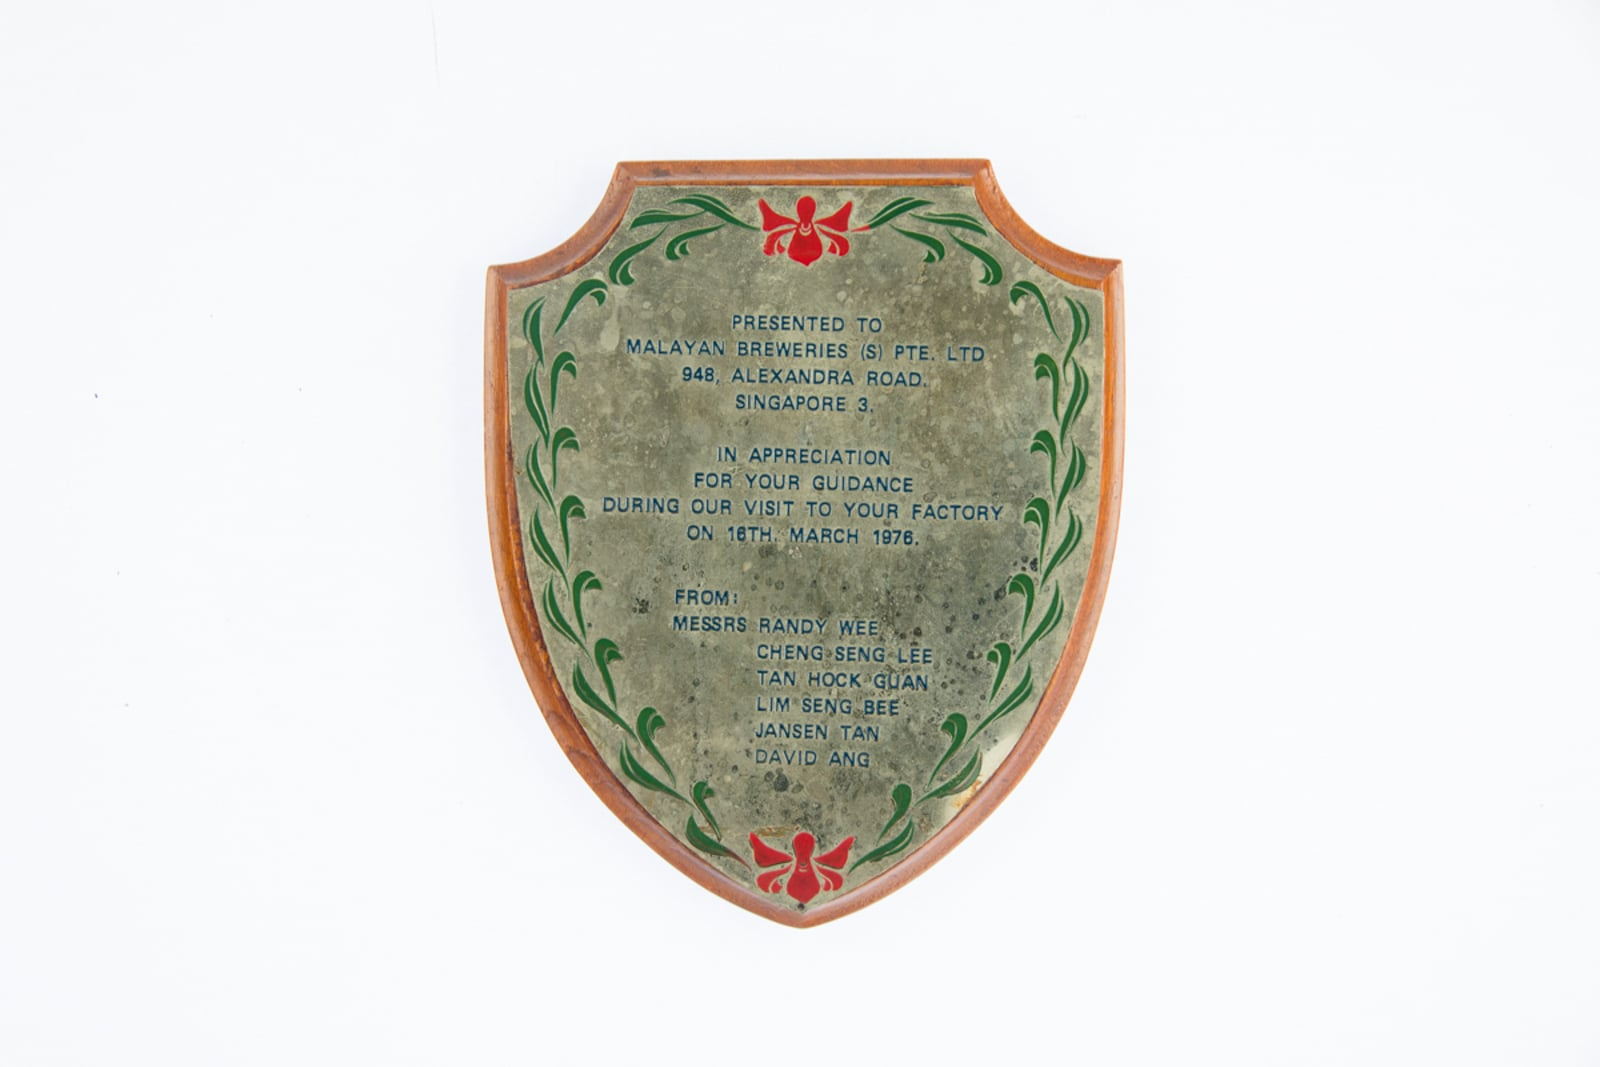 Messrs Randy Wee and others Appreciation Plaque 1976